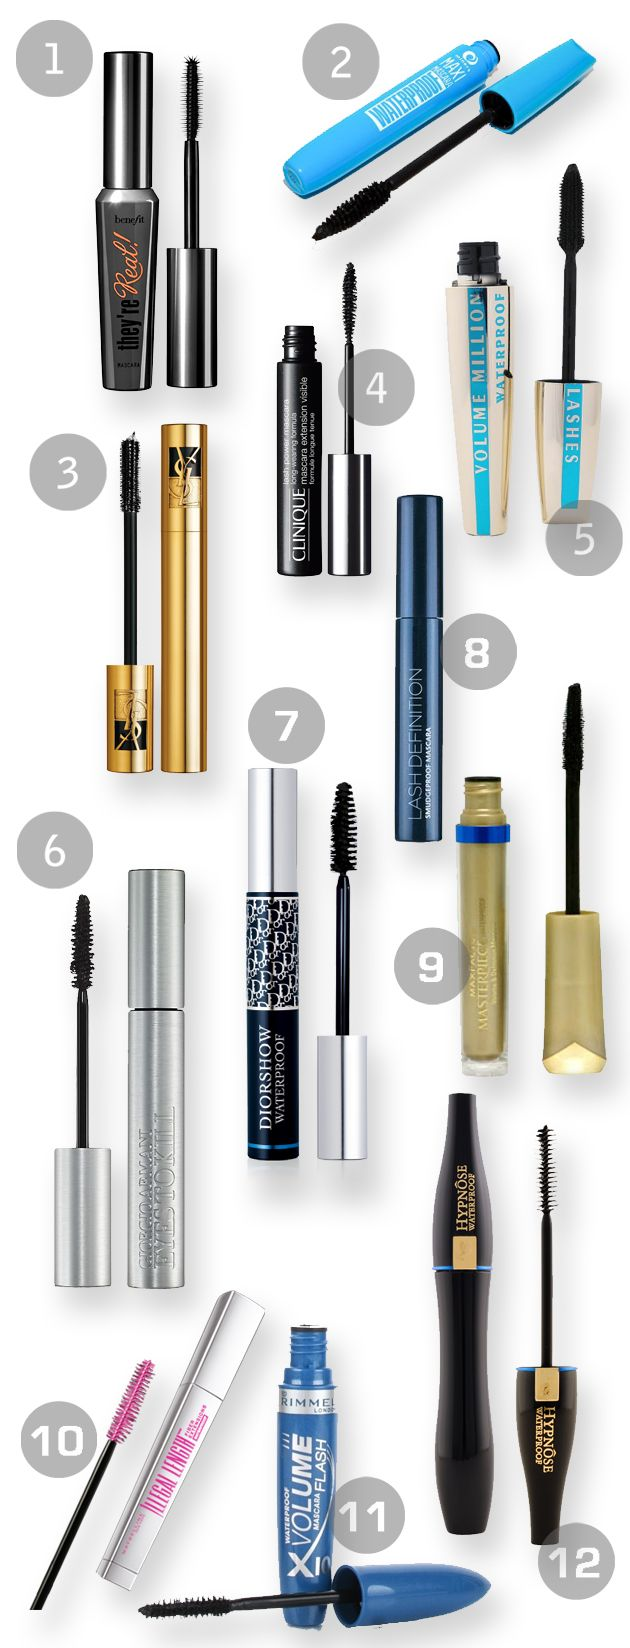 12 of the best Waterproof and smudge-proof mascaras. Perfect for dealing with the April showers!